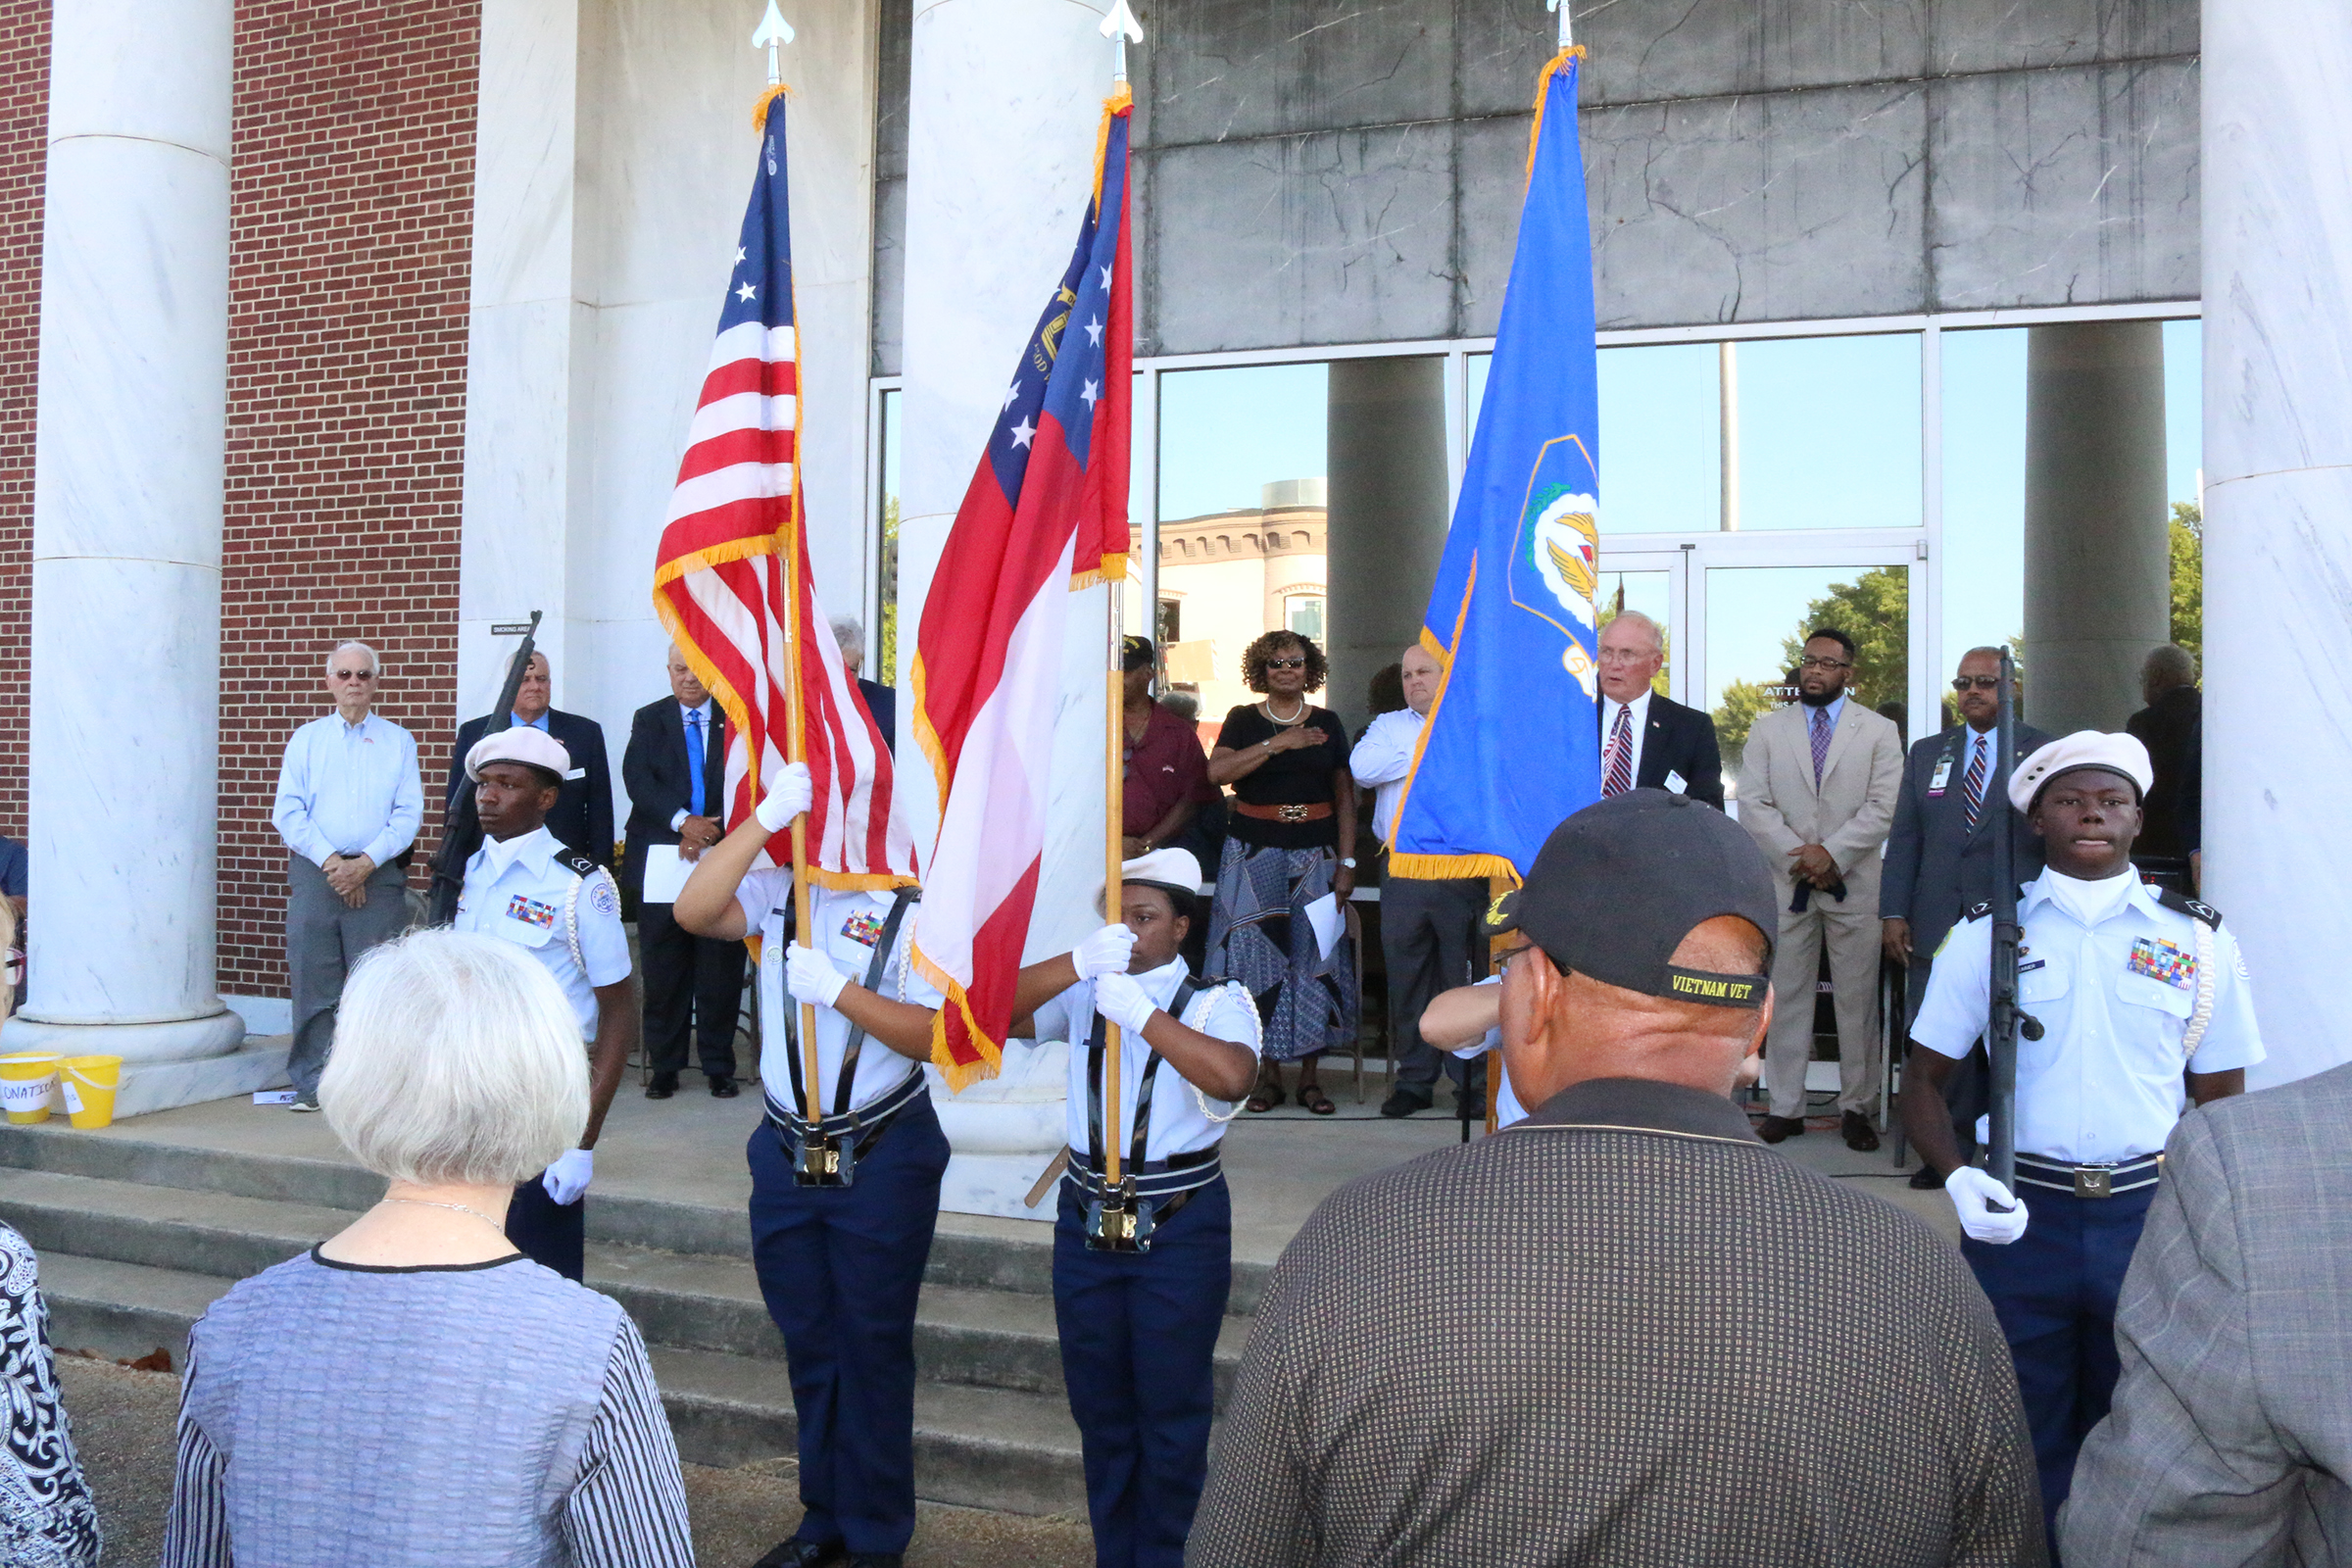 ROTC display the colors at the front steps to the building while a crowd sit in front observing the ceremonies